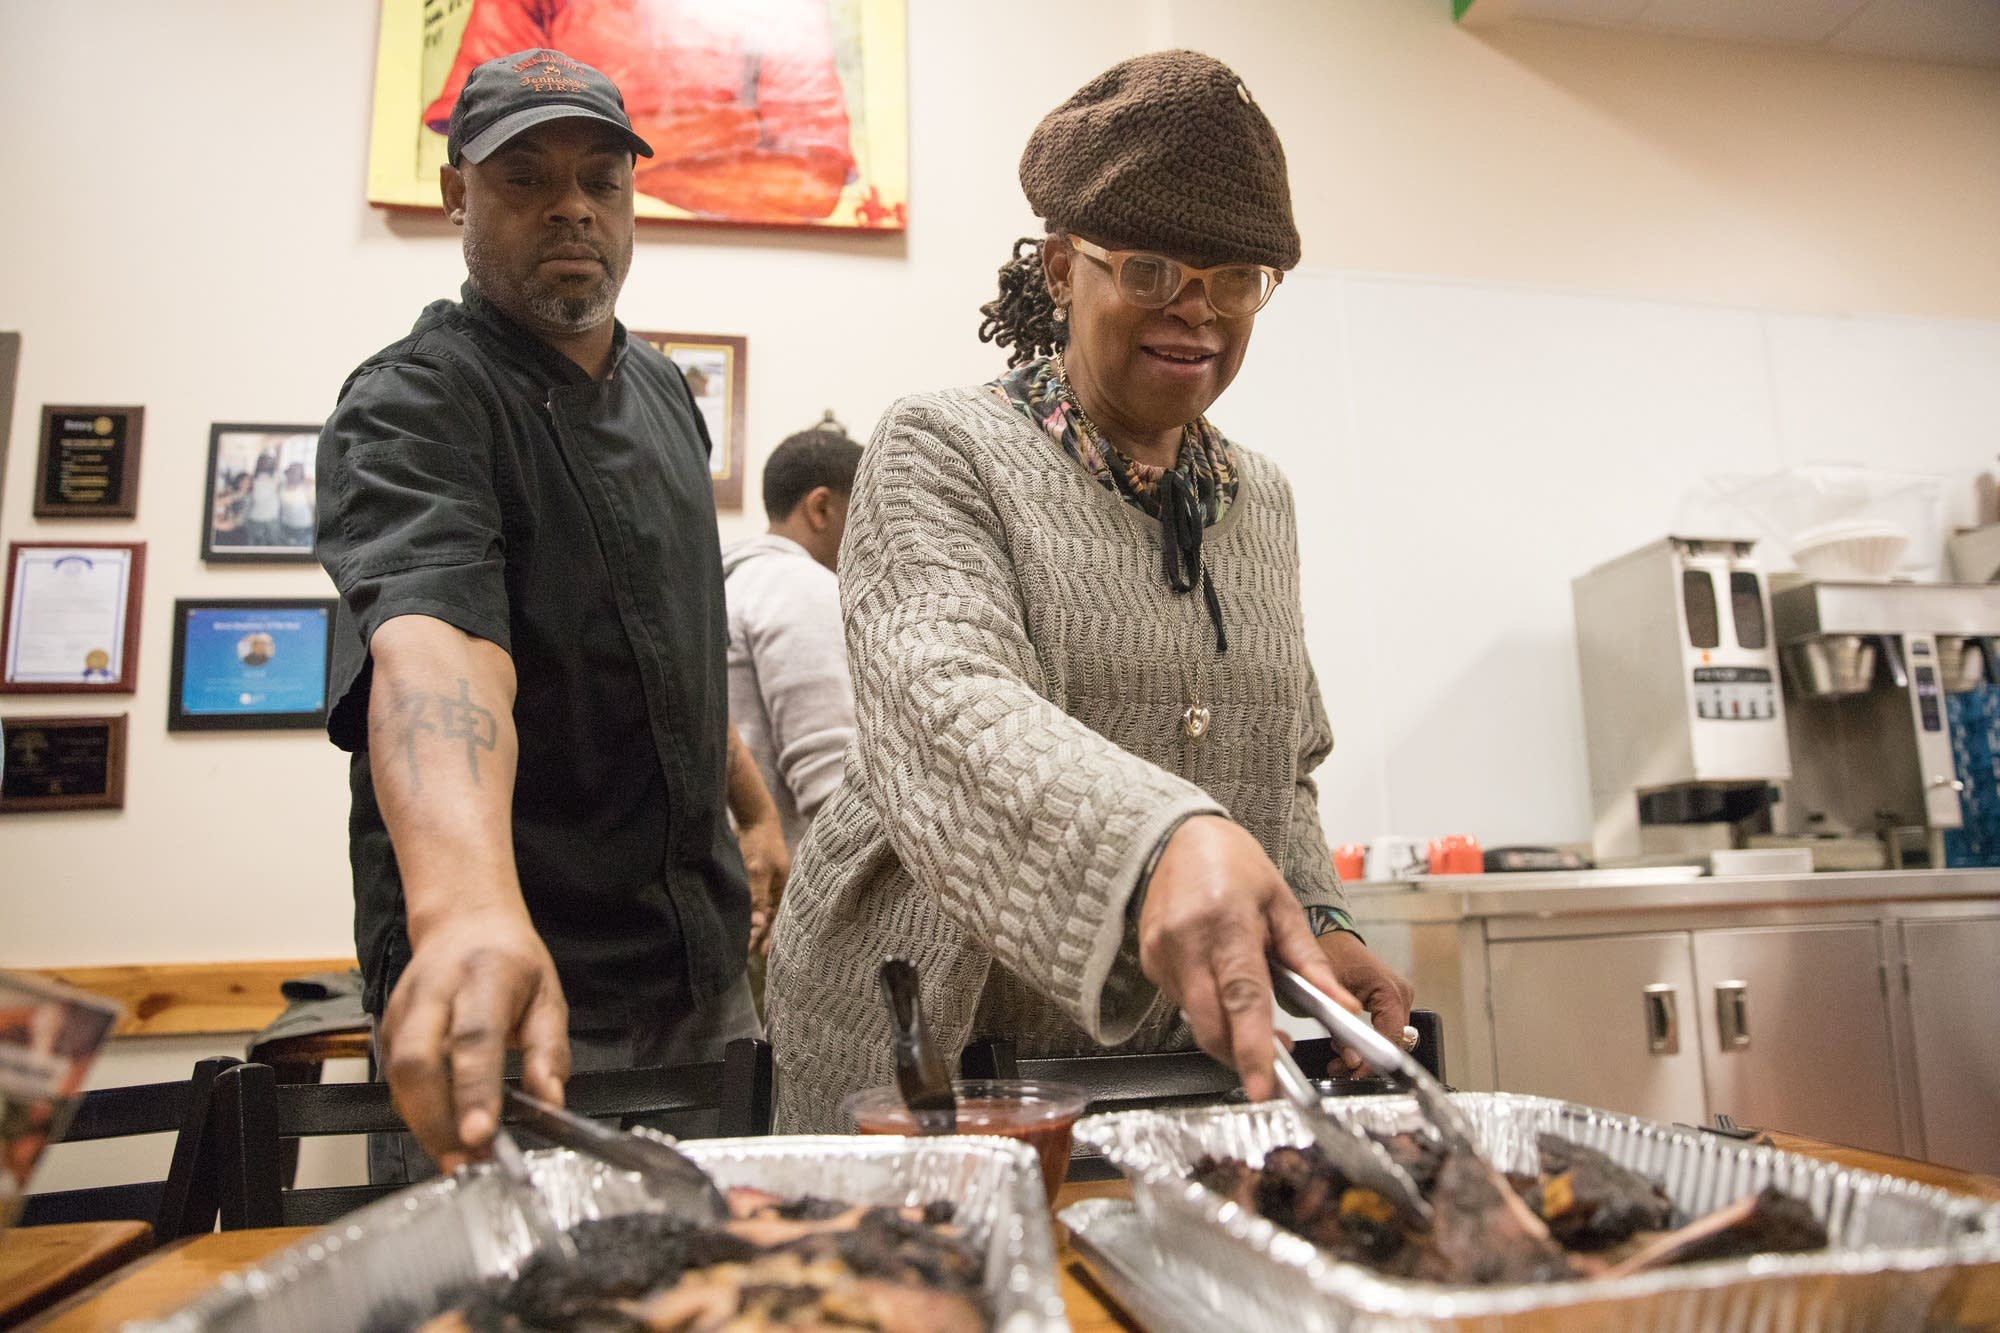 Brandy Baum (left) and Tene Wells start digging into two of the dishes.